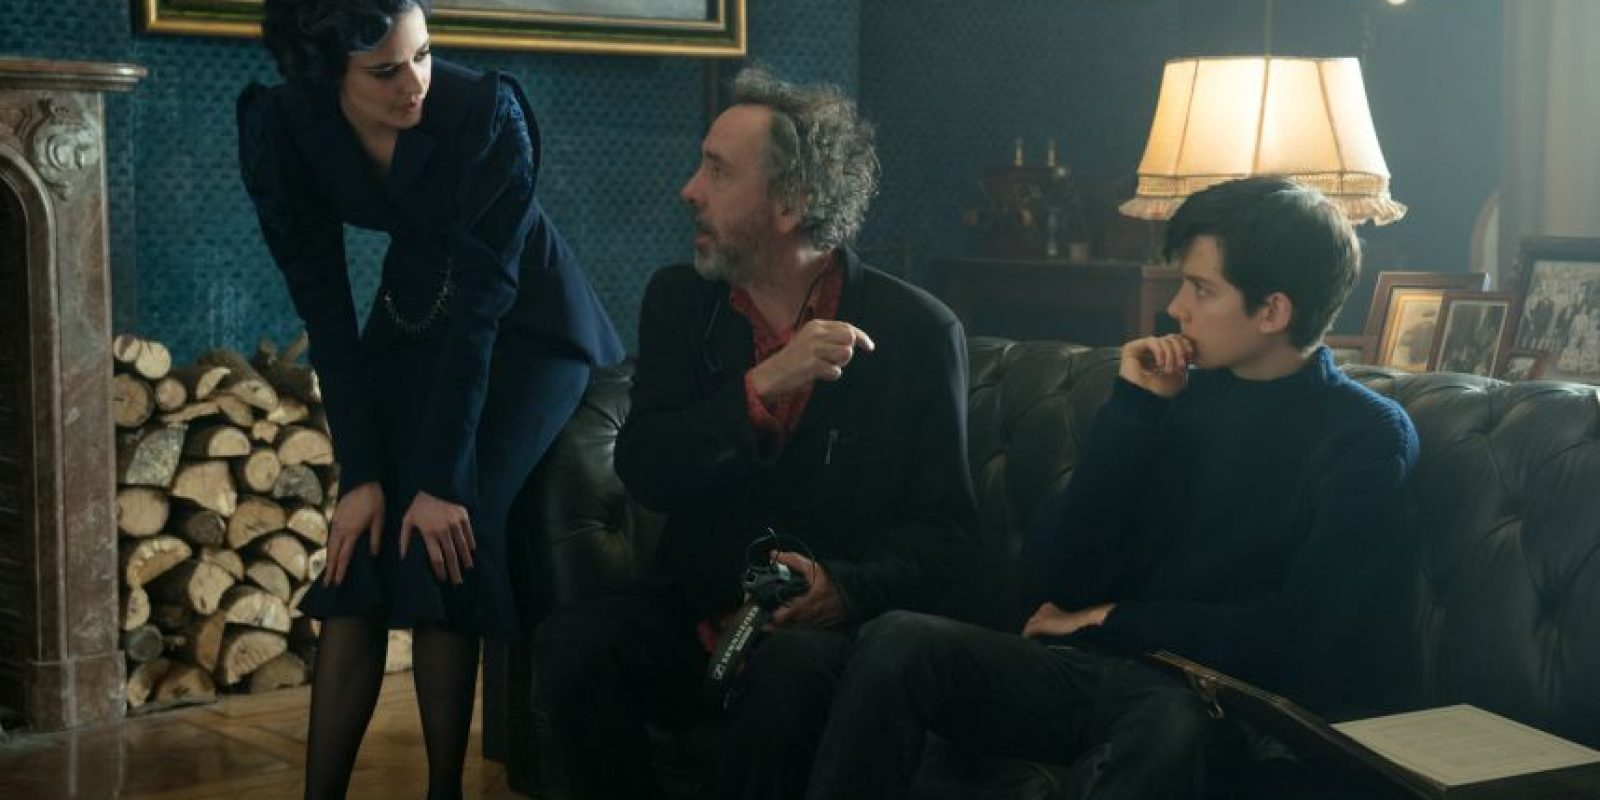 Foto: 20th Century Fox y Tim Burton Productions